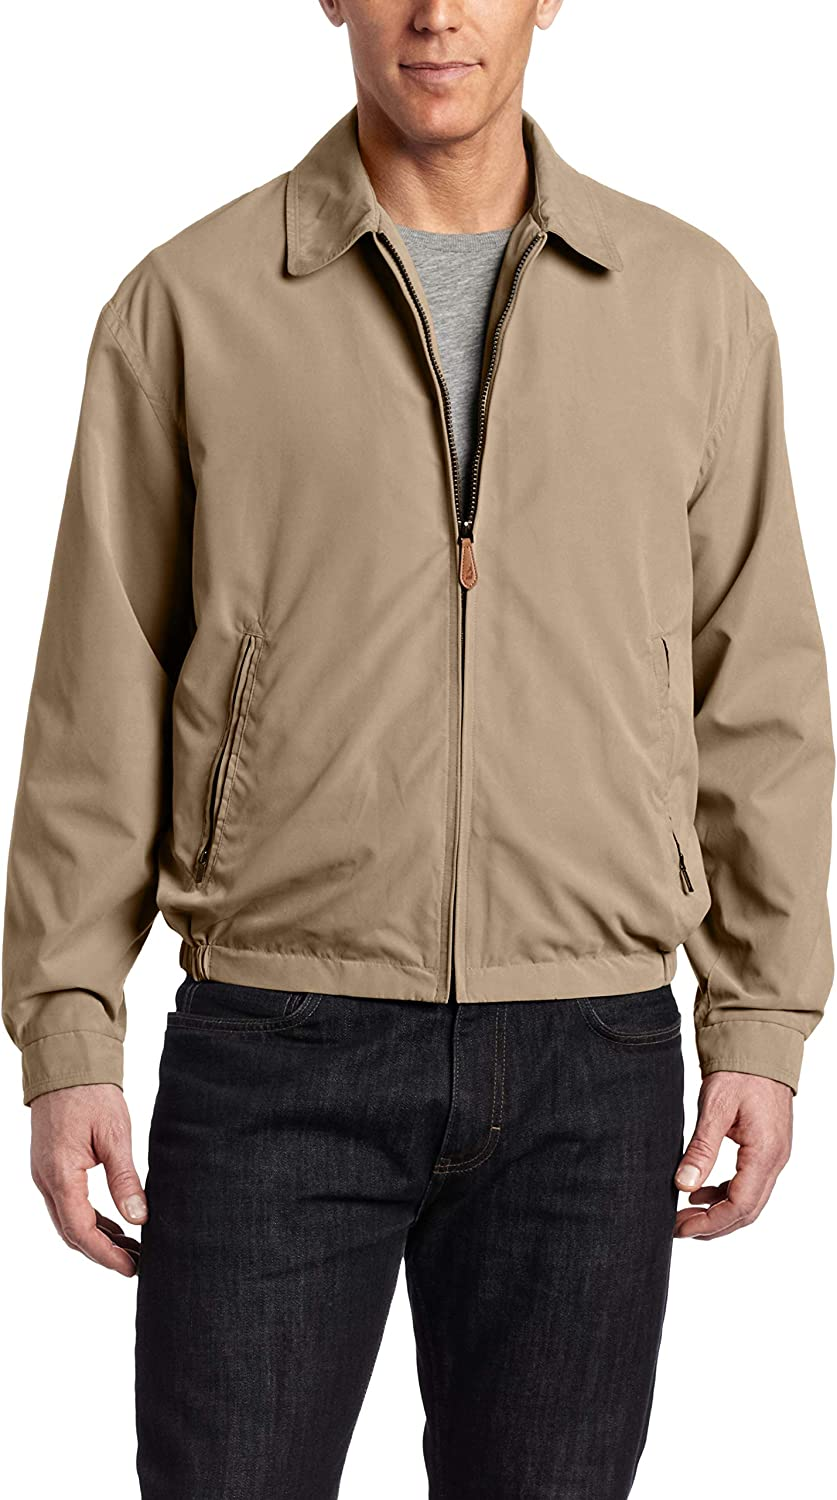 London Fog Men's Auburn Zip-Front Golf Jacket (Regular & Big-Tall Sizes) at  Men's Clothing store